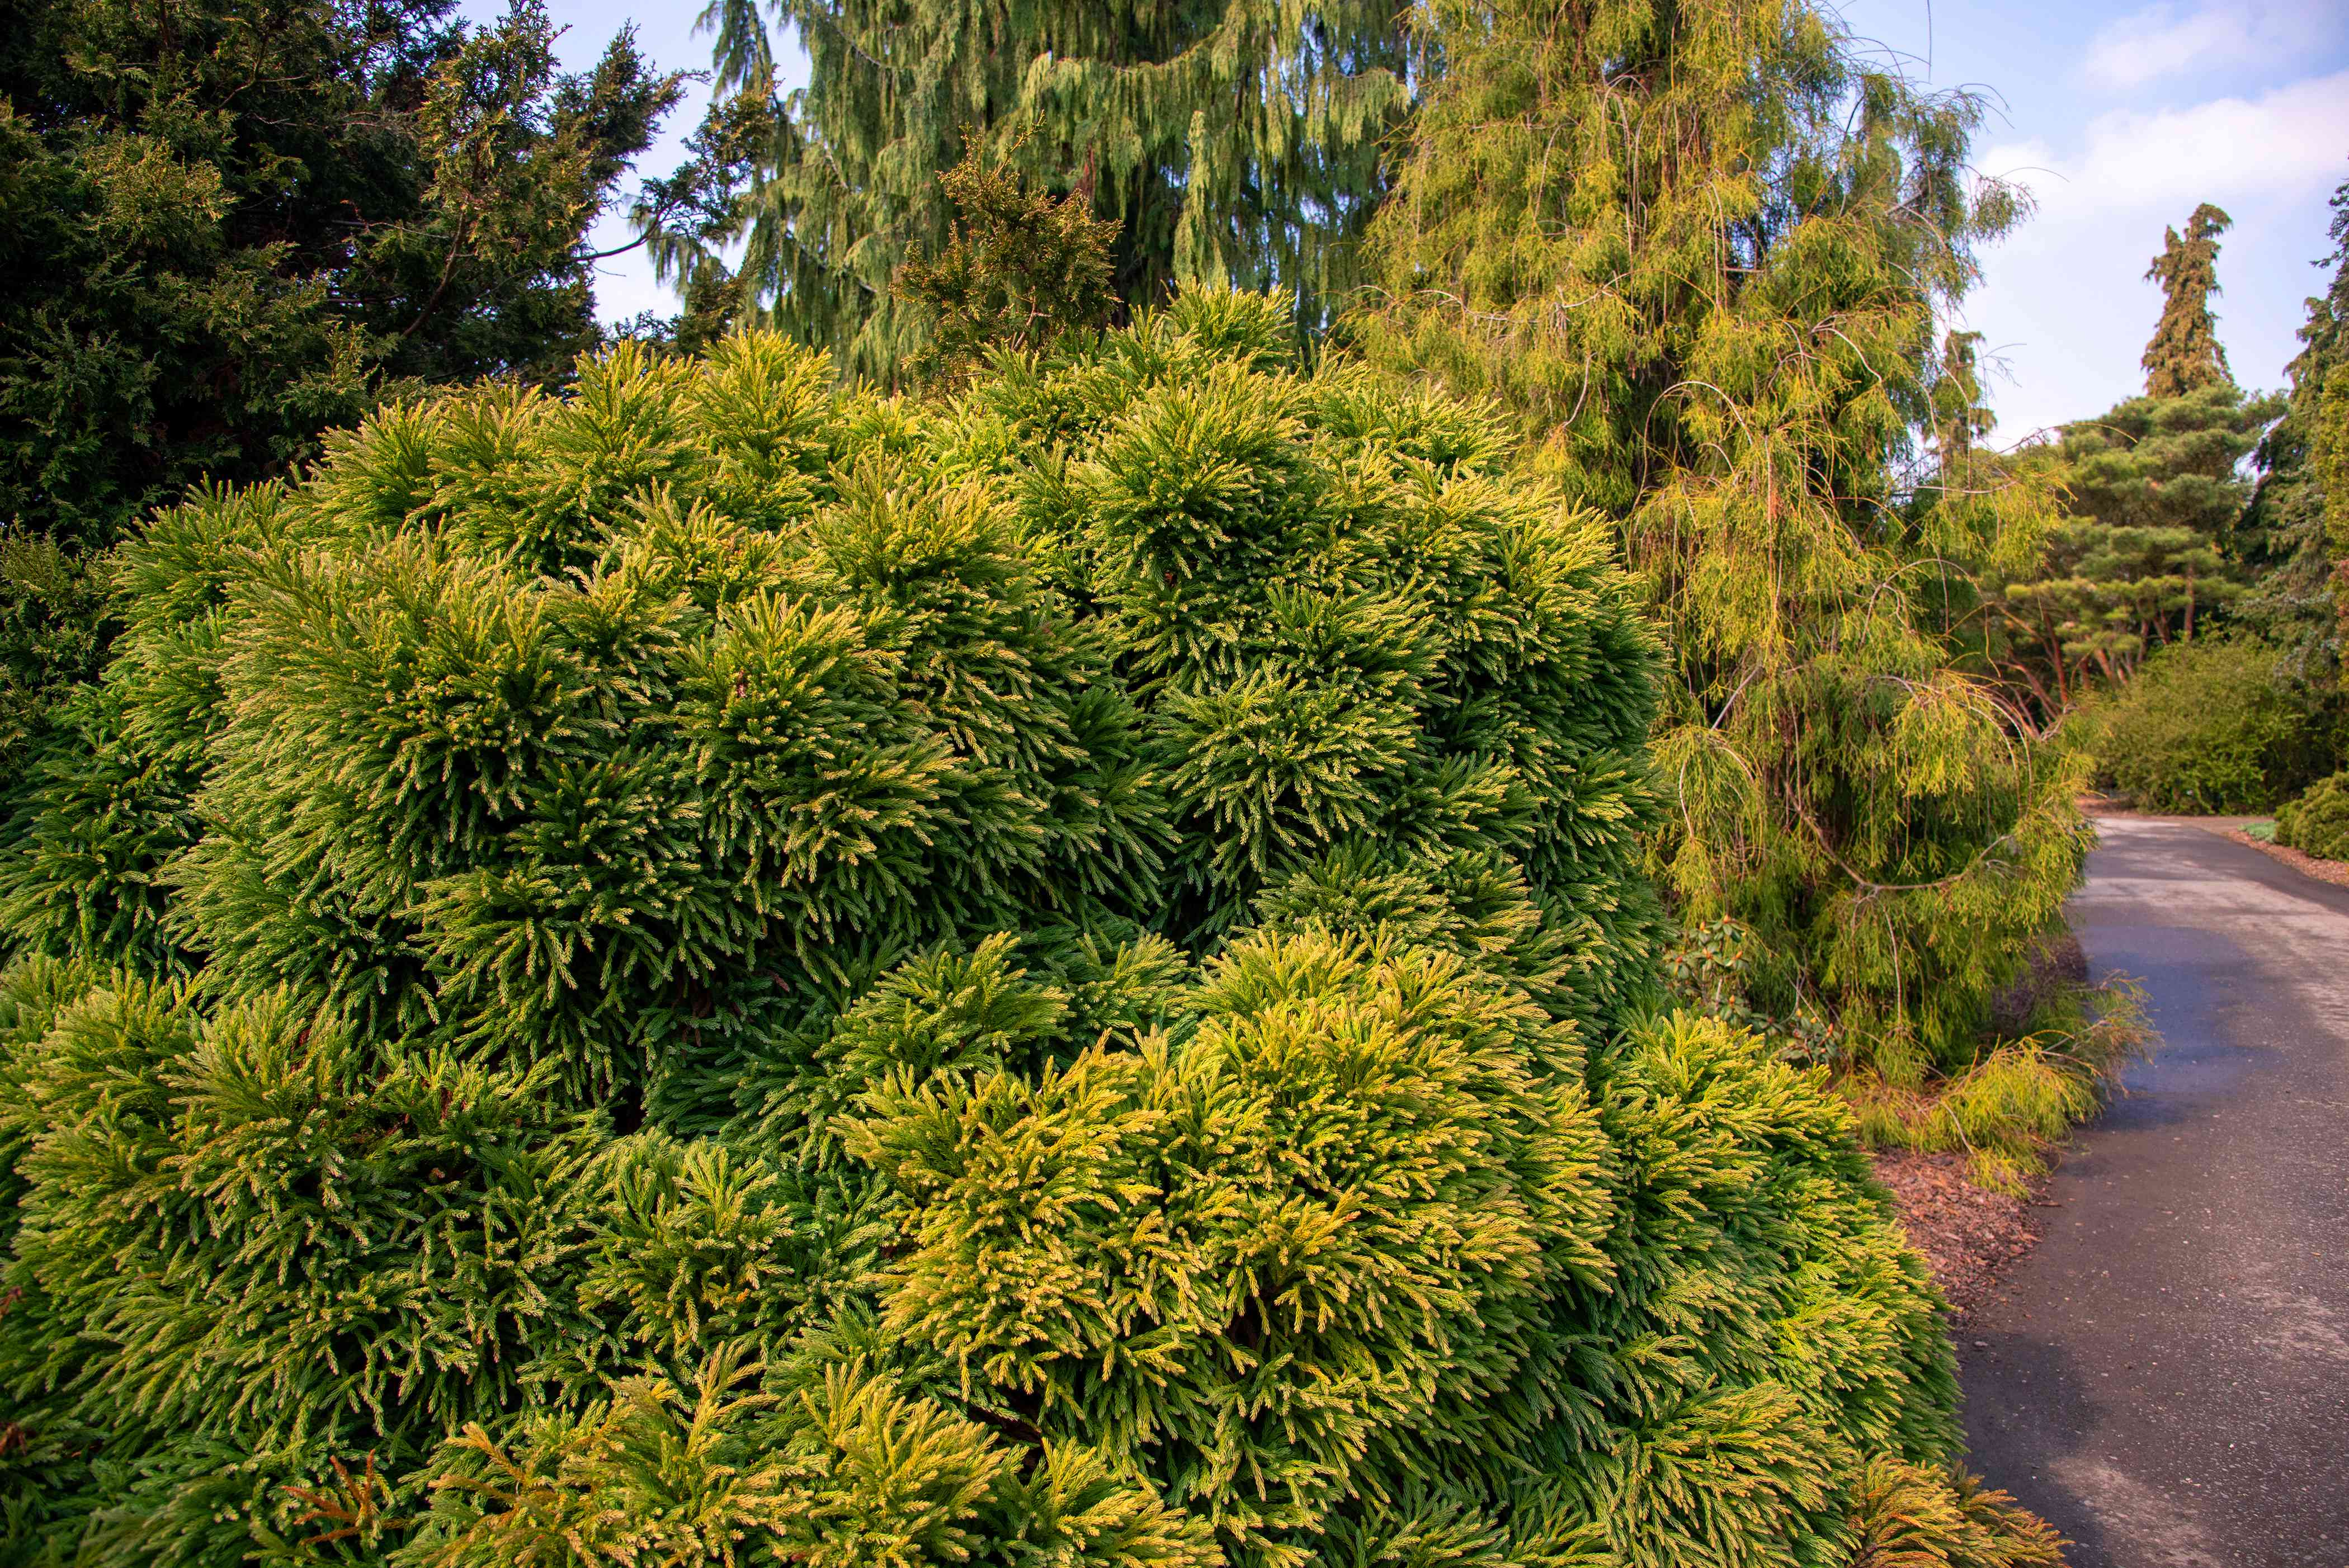 Japanese cedar trees with yellow-green evergreen leaves near road way